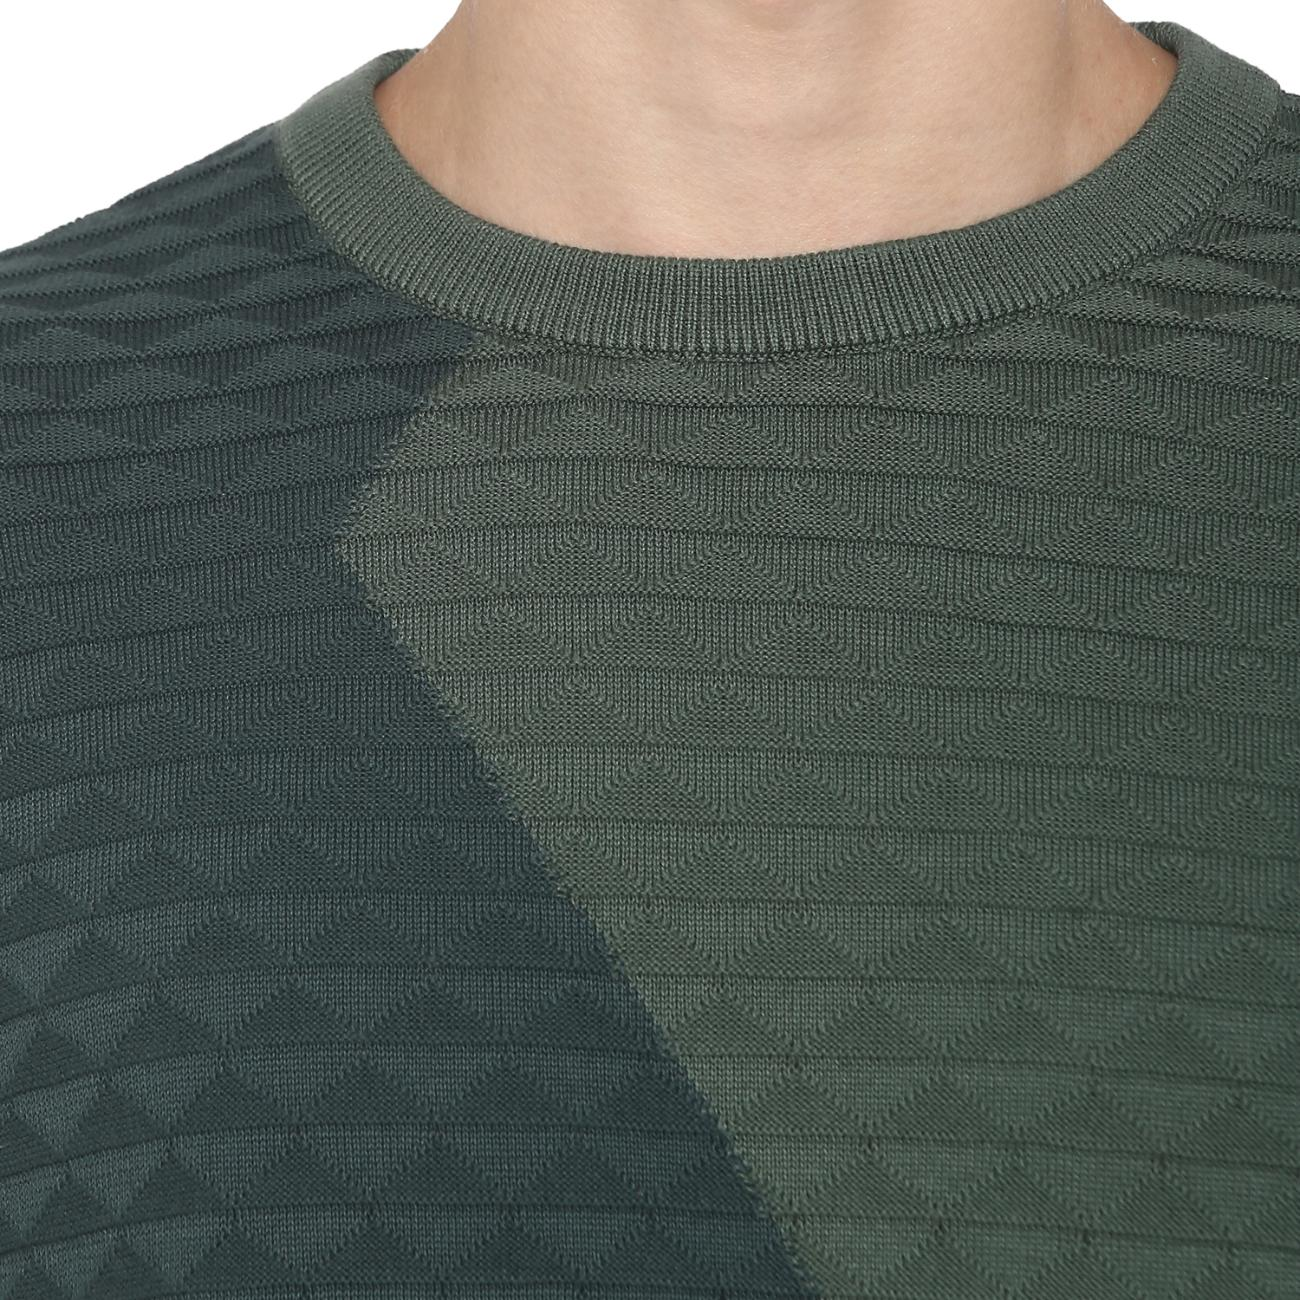 Green Colourblocked Sweater Online at Red Chief